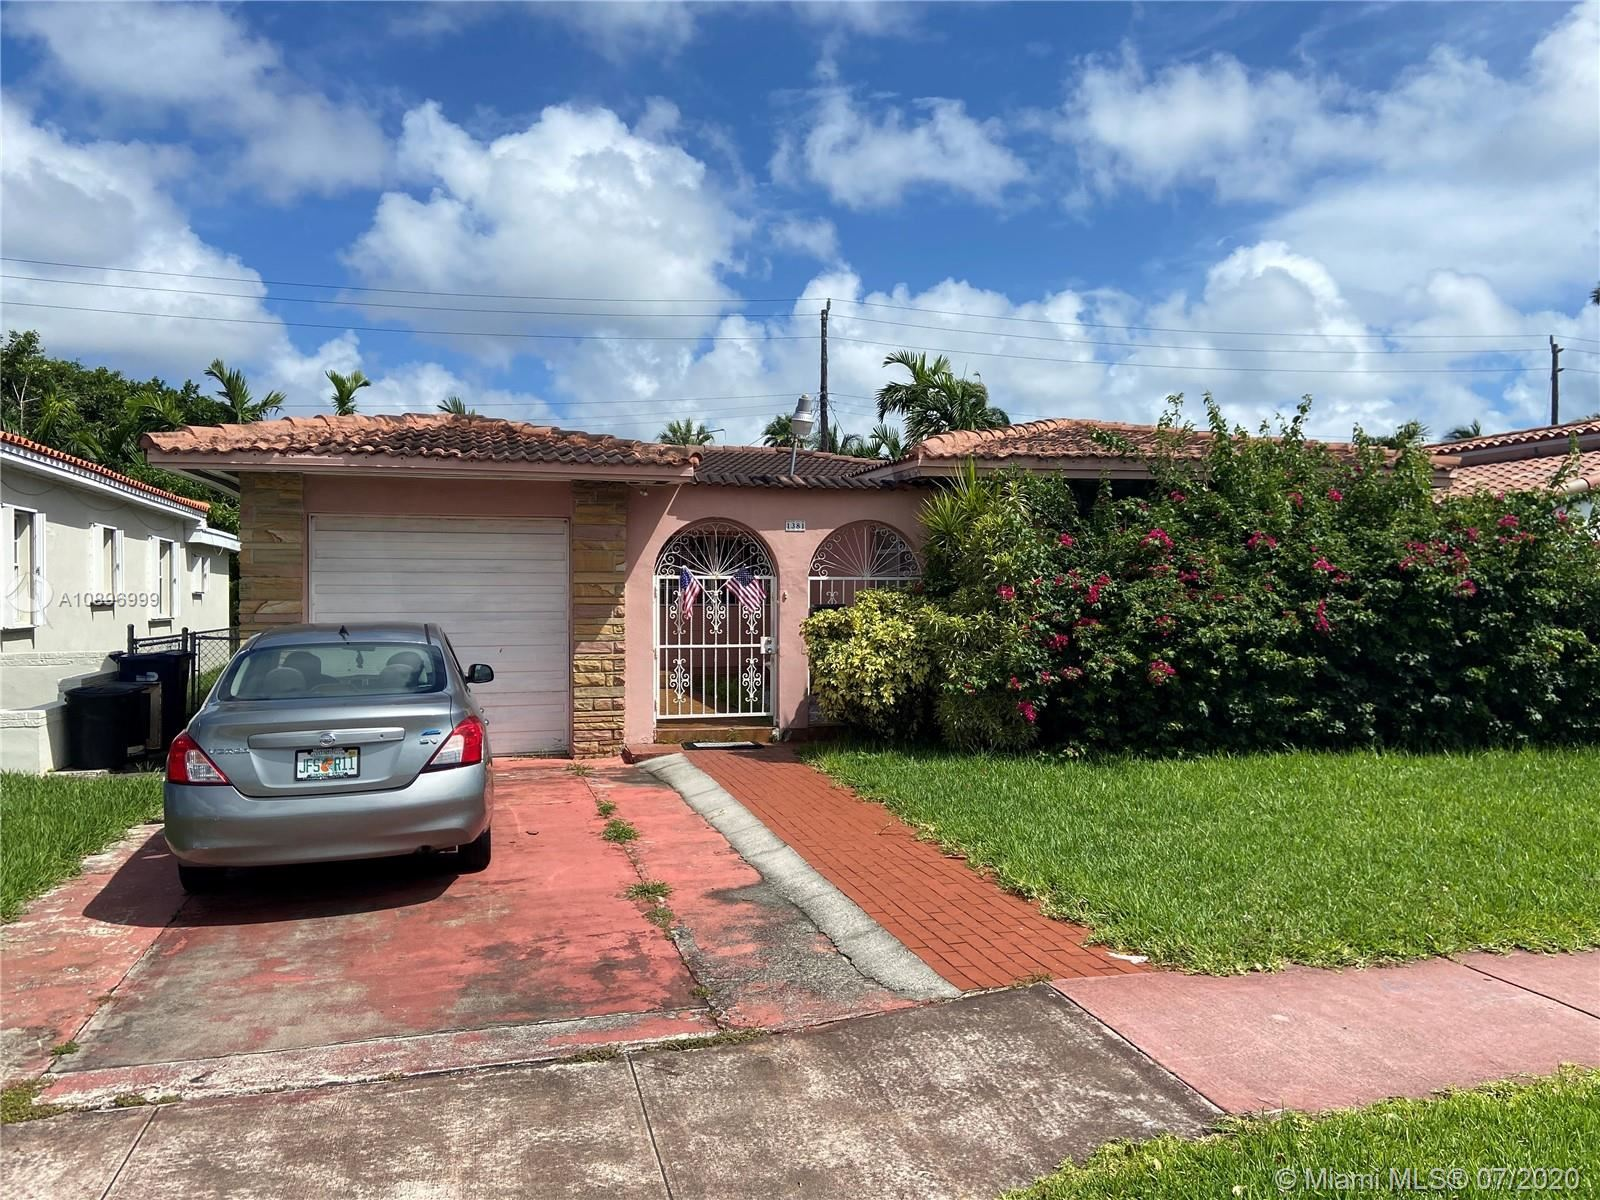 1381 Normandy Dr, Miami Beach, FL 33141 - #: A10896999